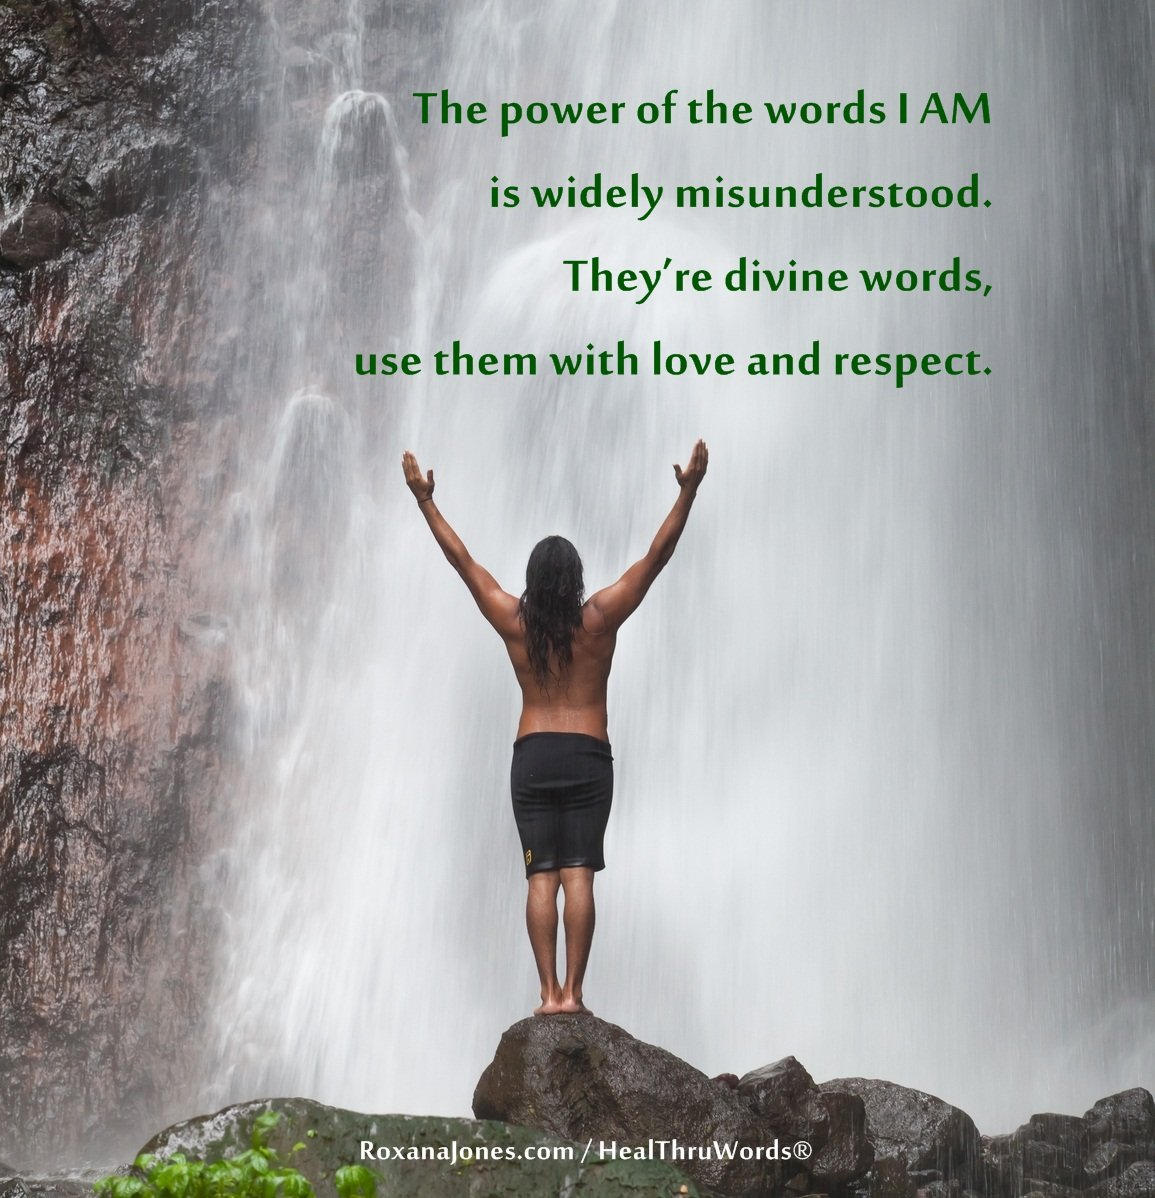 Inspirational Image: The Power in I AM